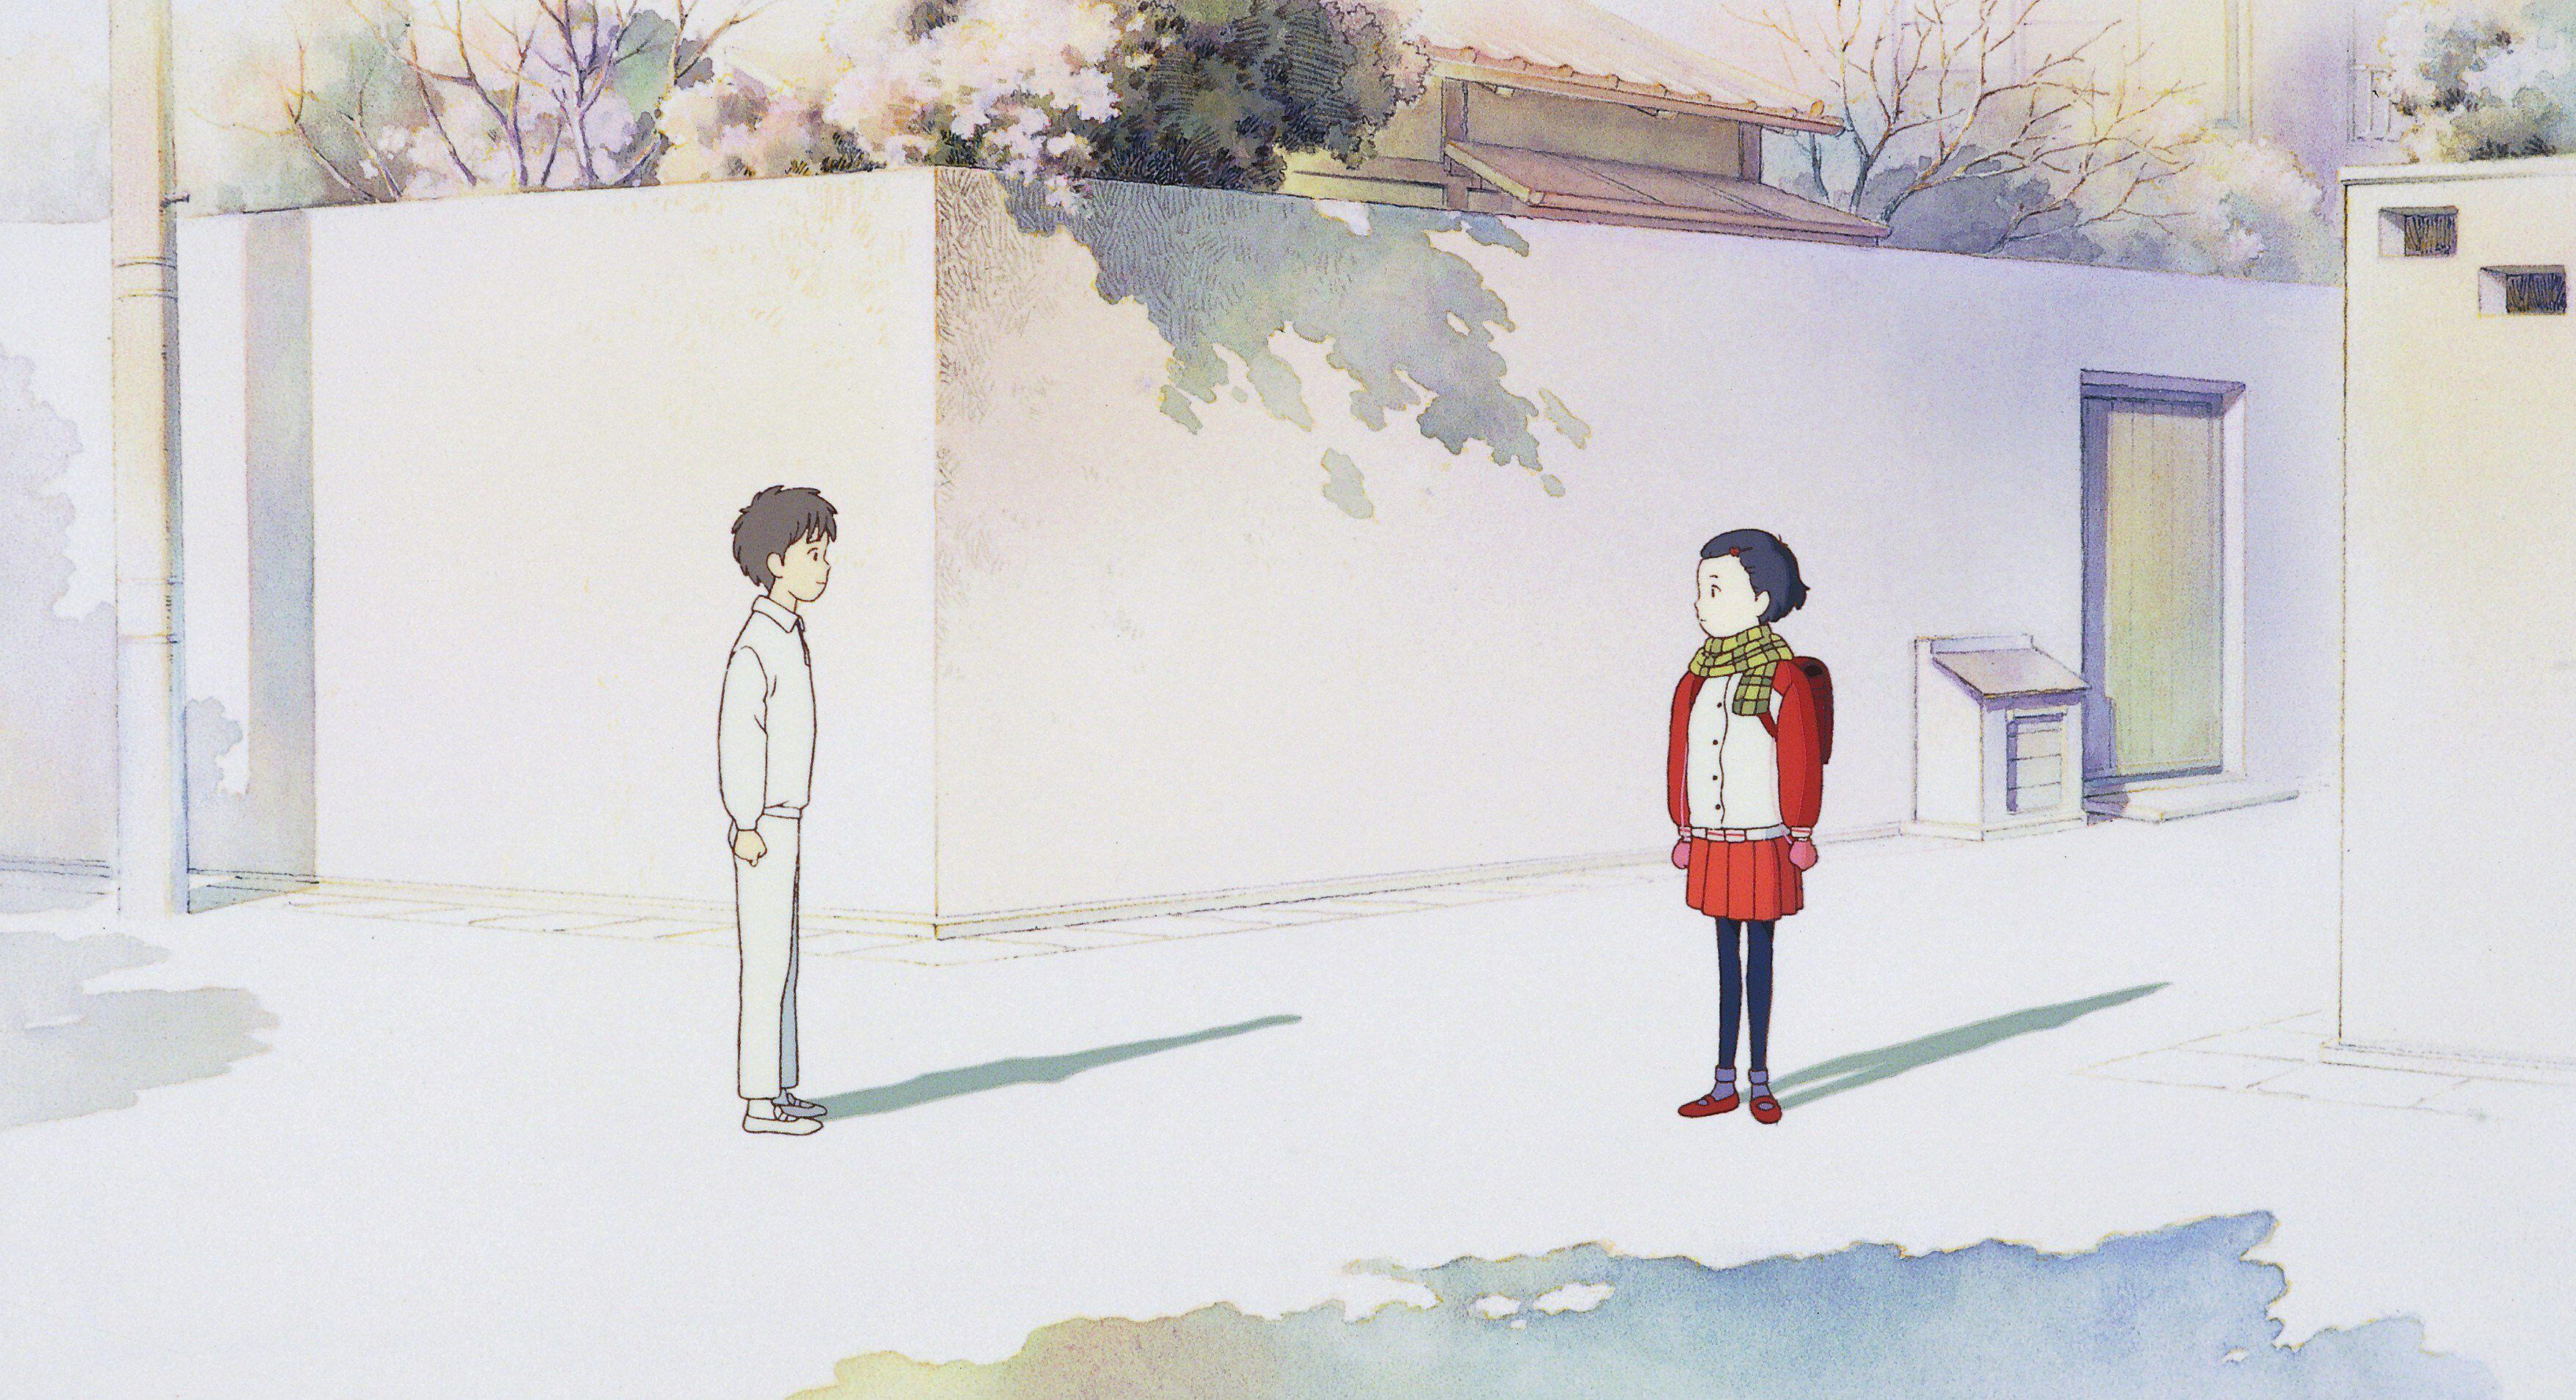 6- Only Yesterday (1991) Isao Takahata